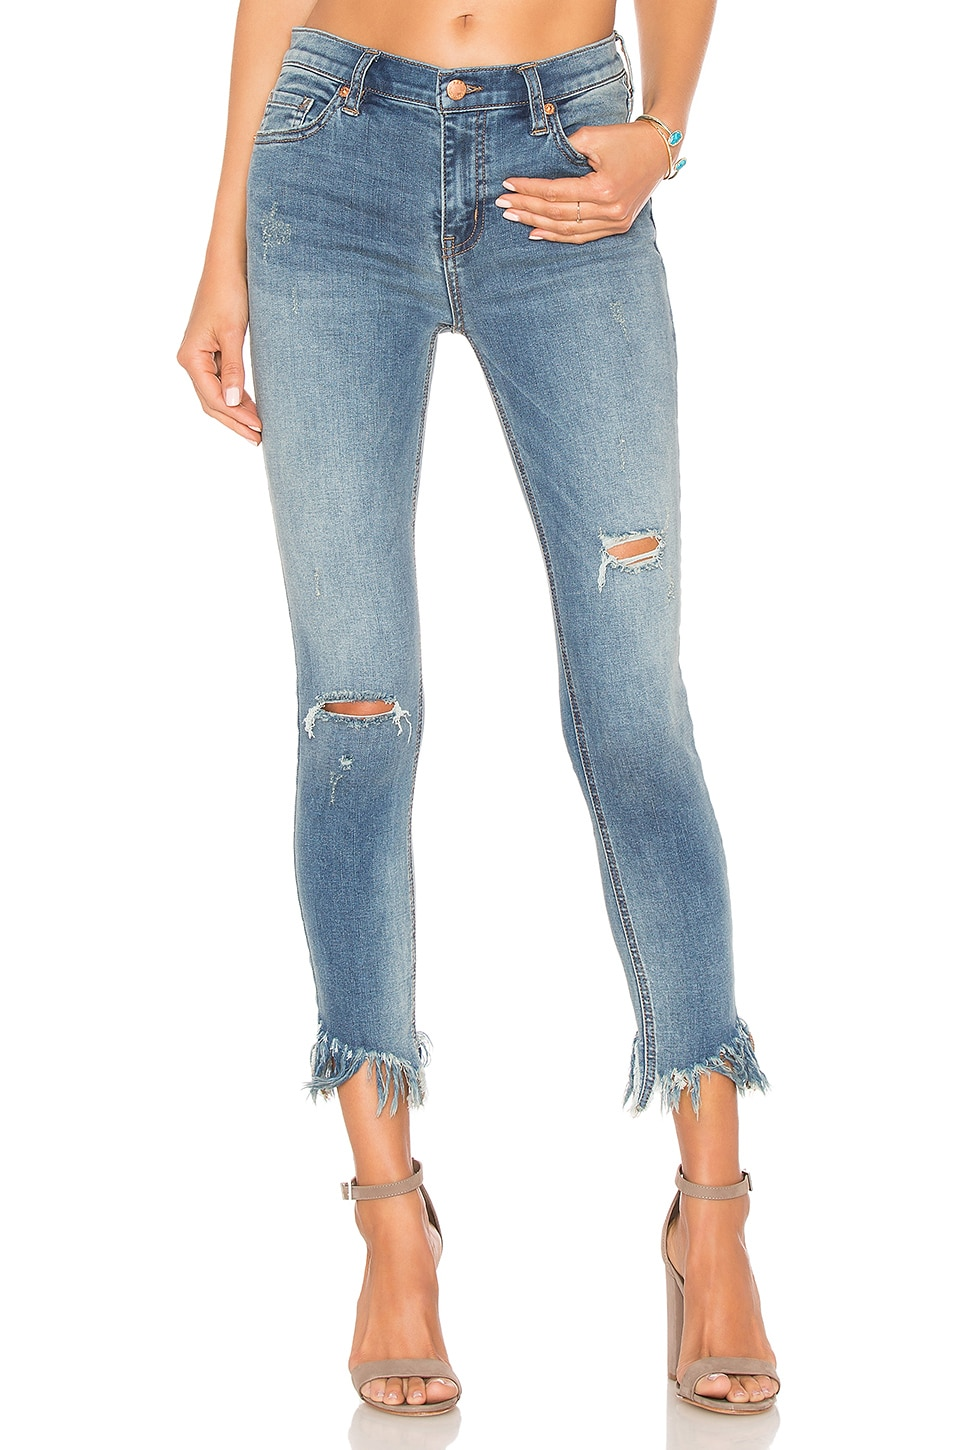 Free People Great Heights Frayed Skinny Jean in Sky